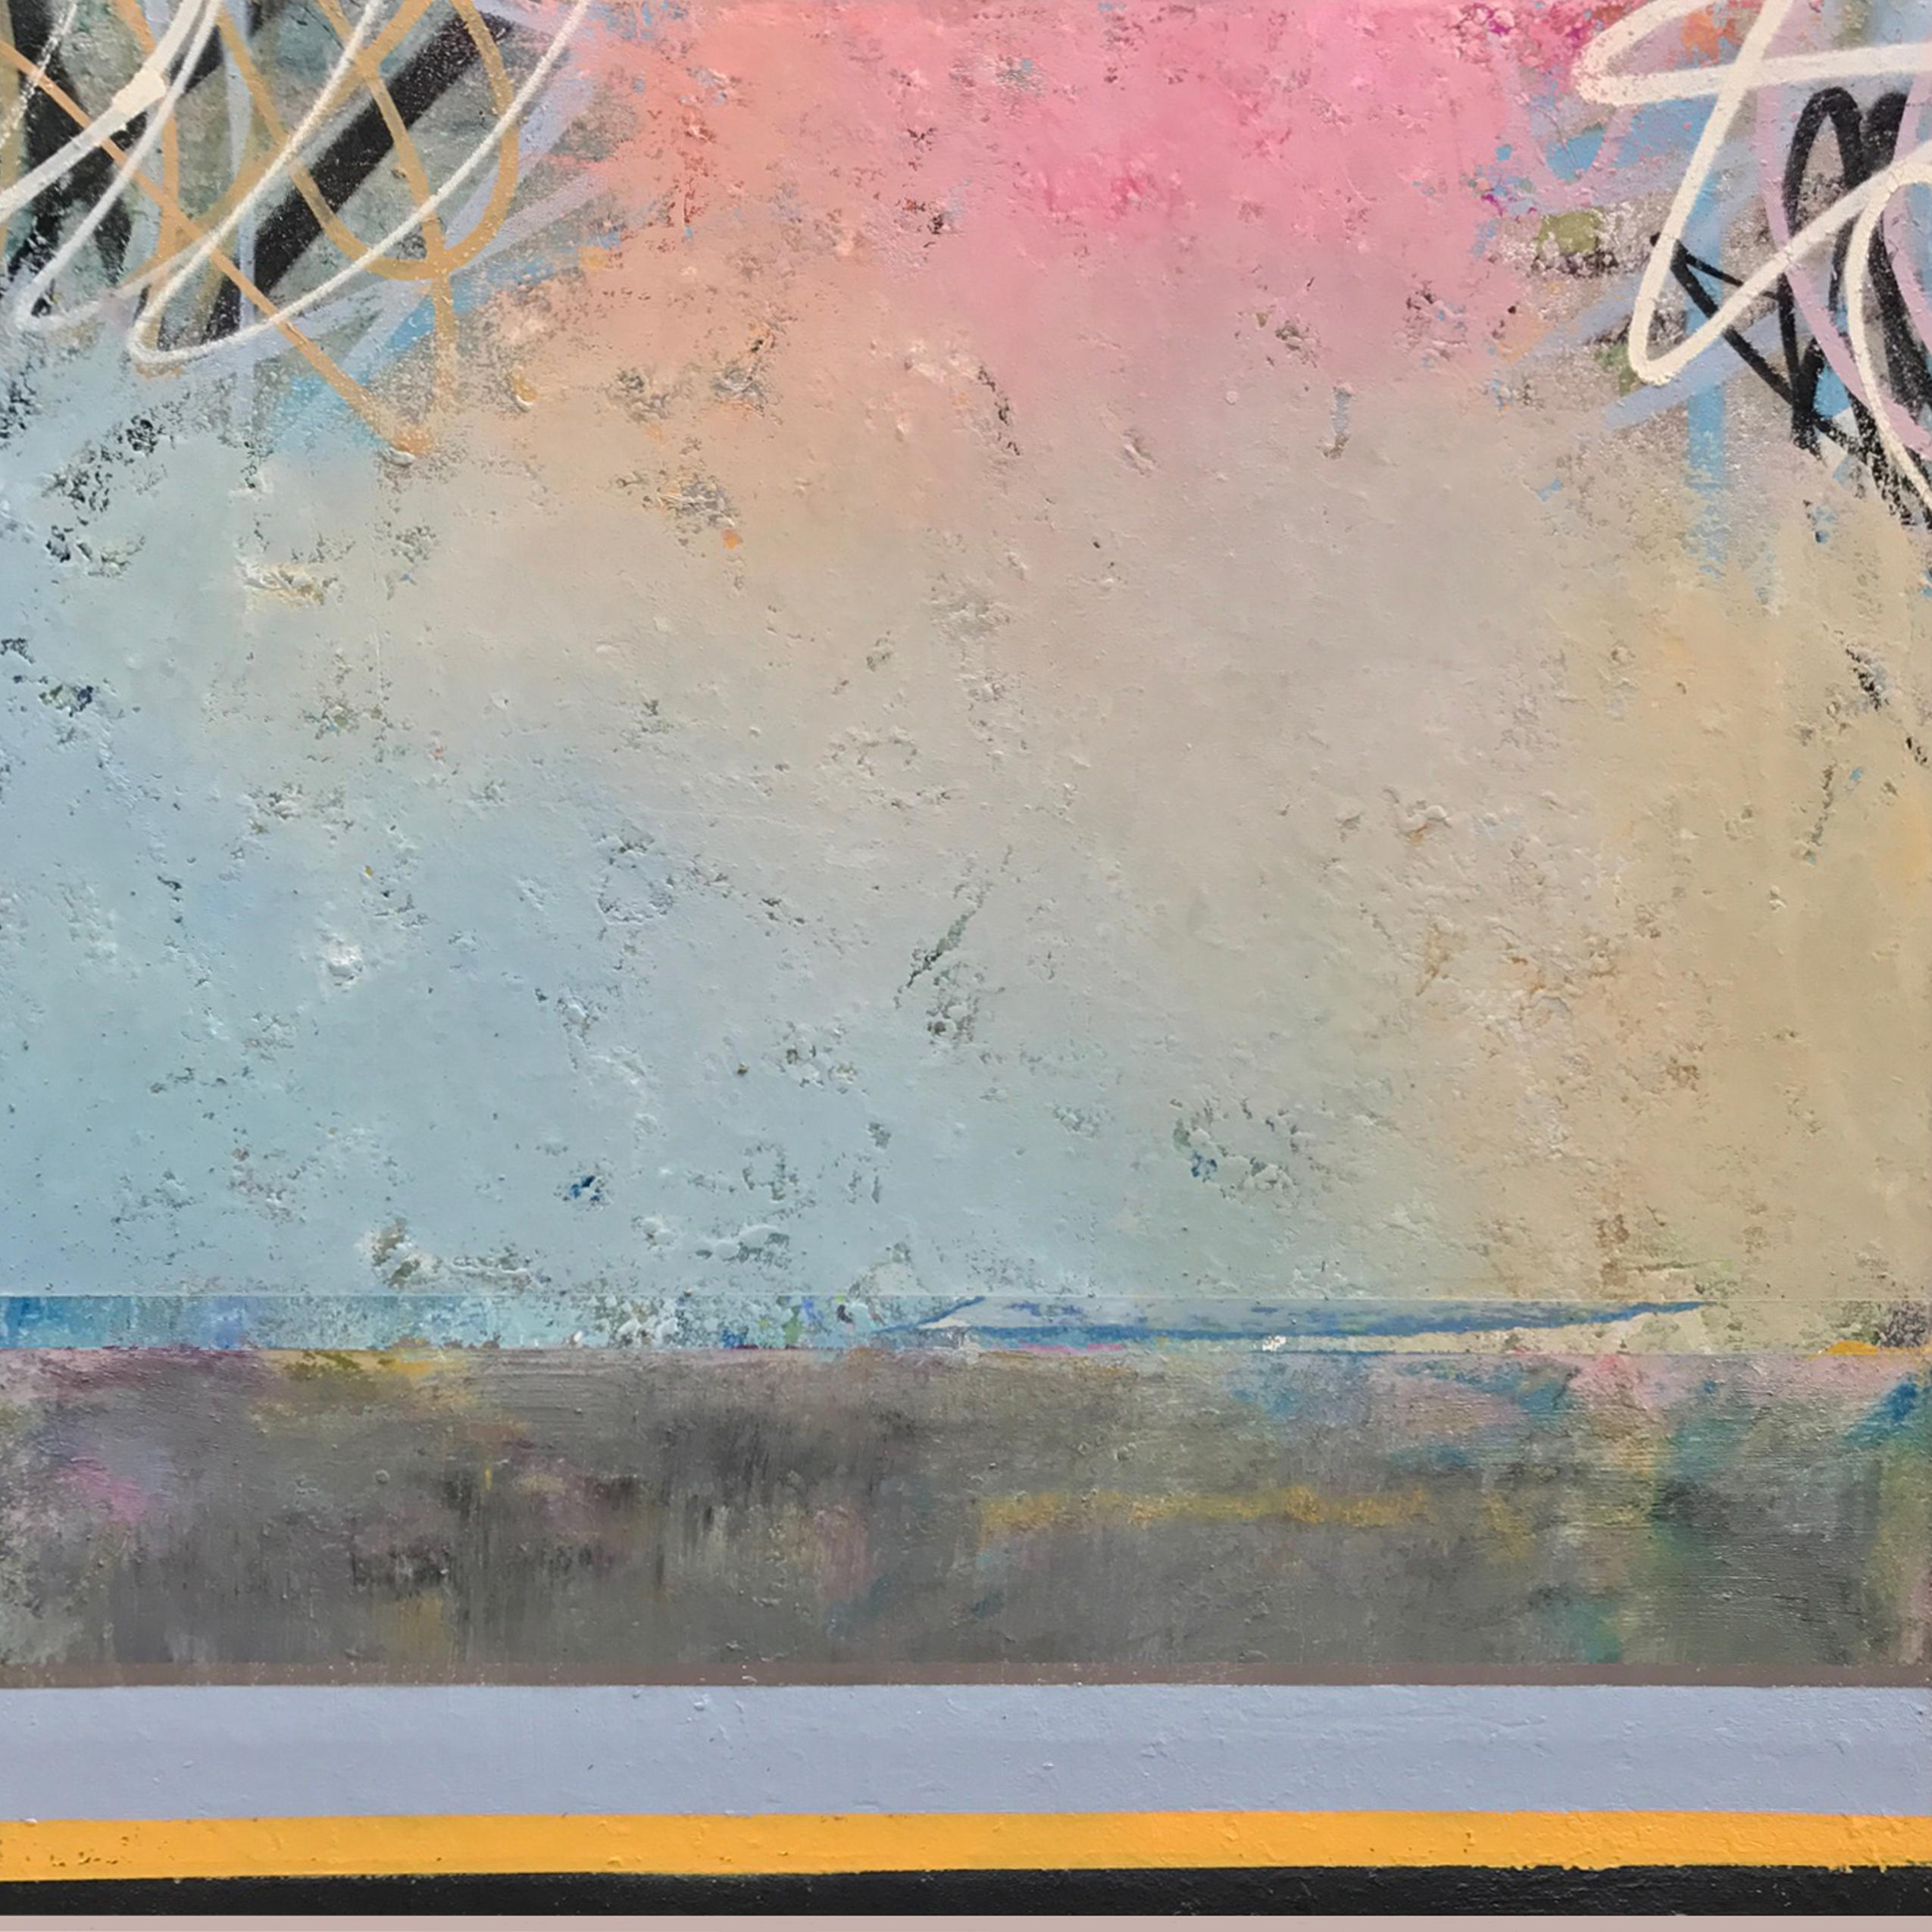 Indecision, 2017, Acrylic, Oil, Spray Paint on Canvas, Signed on Verso